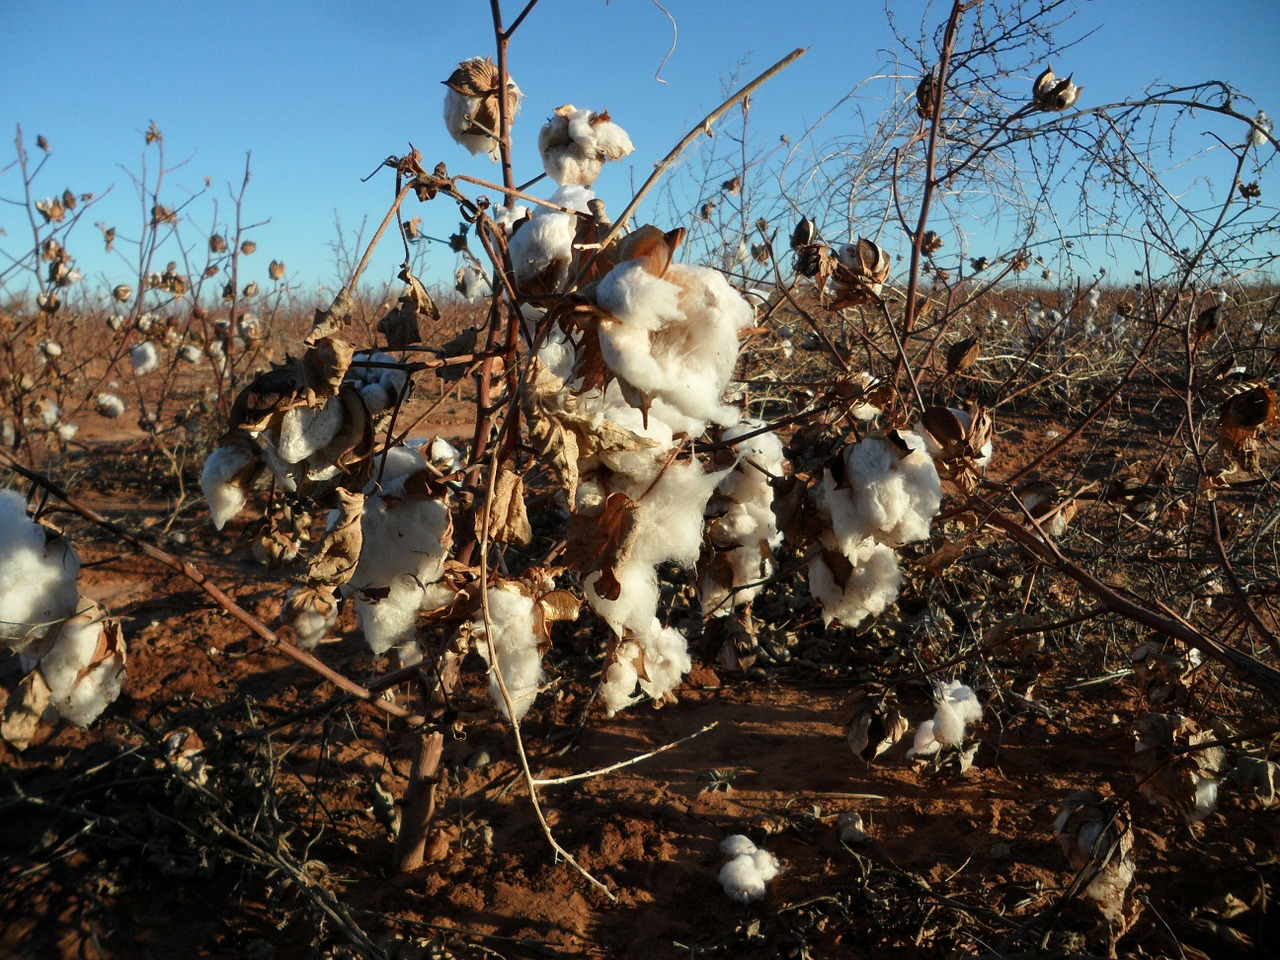 Aussie Cotton in High Demand Despite Data Woes